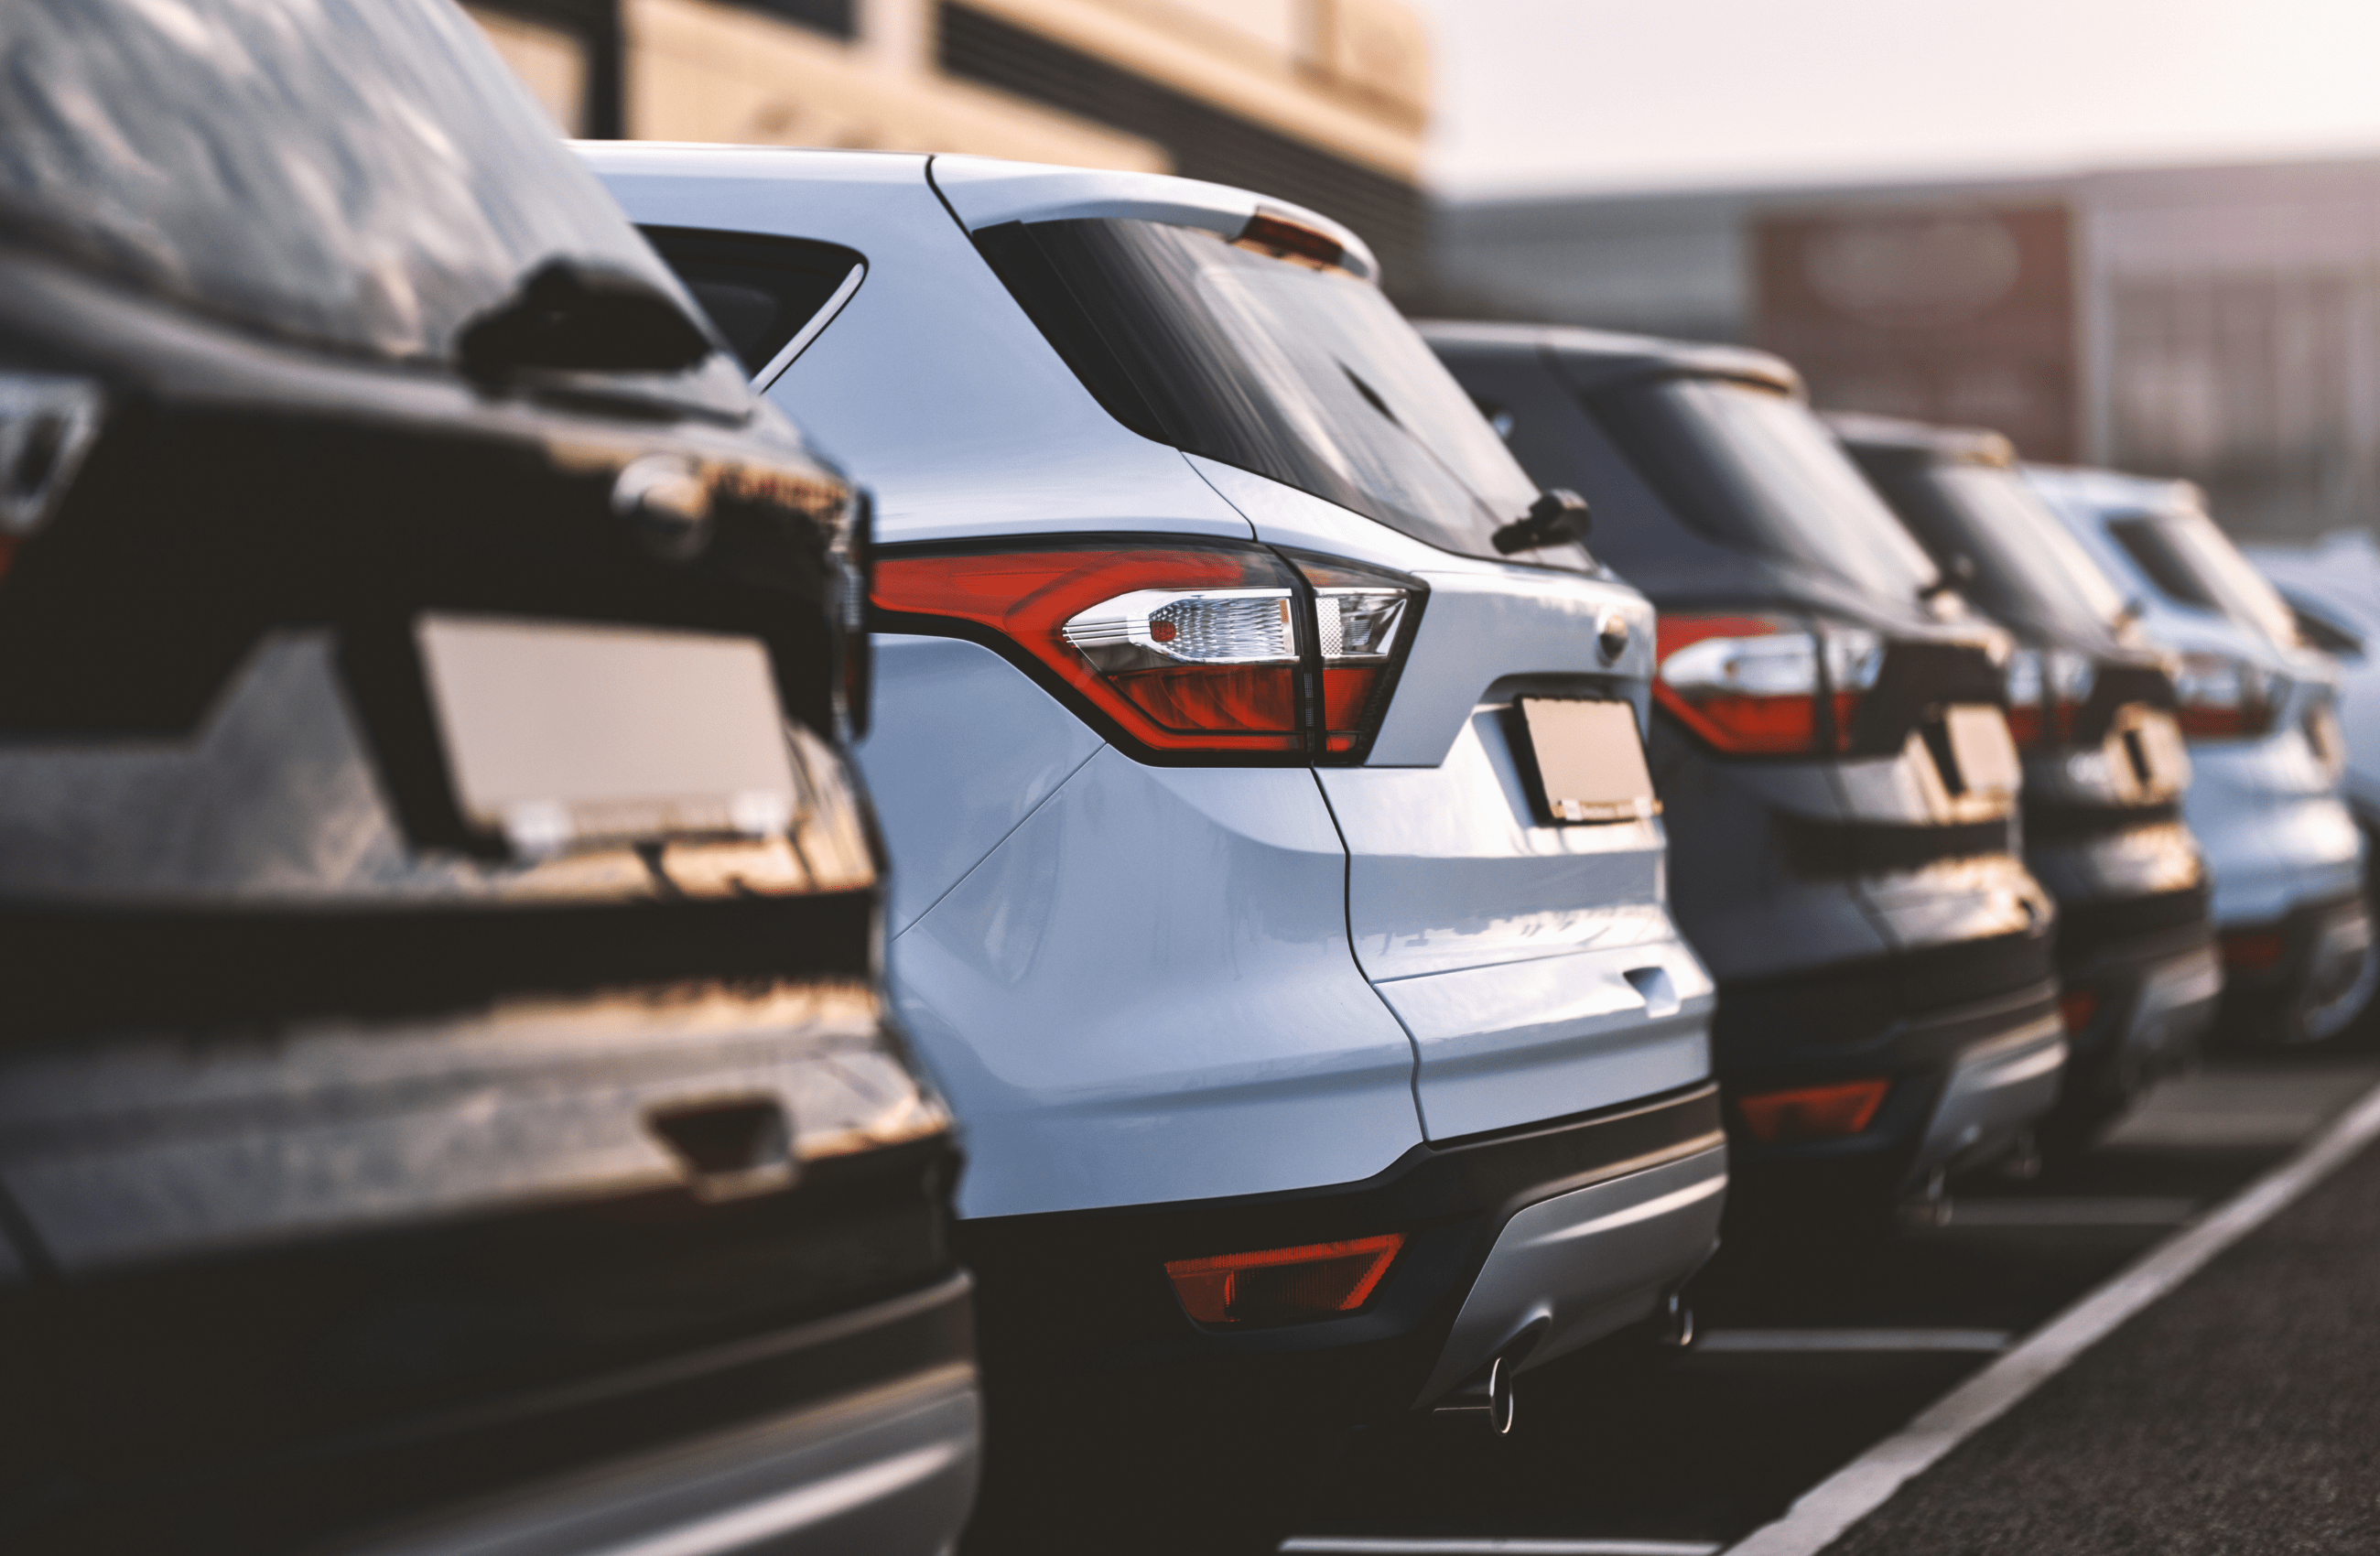 Cars for Vehicle Subscriptions